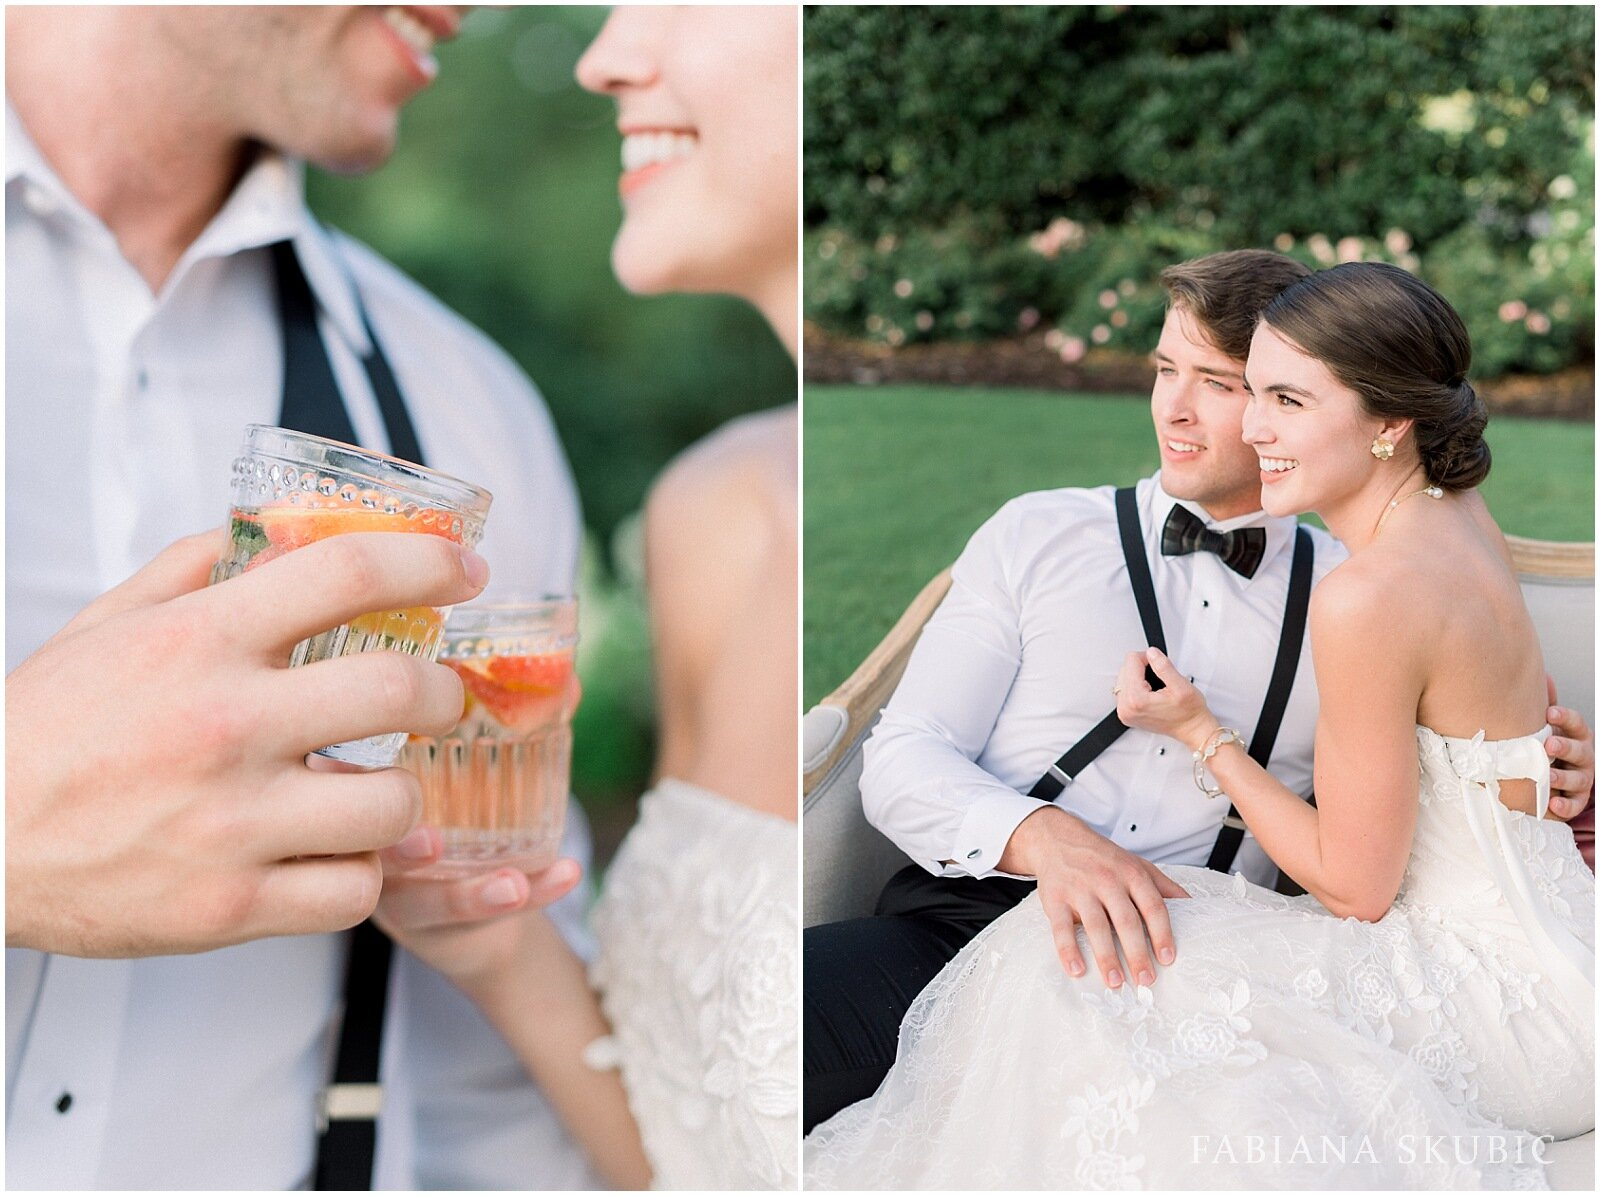 Raleigh-Wedding-Photographer-Fabiana-Skubic (76).jpg